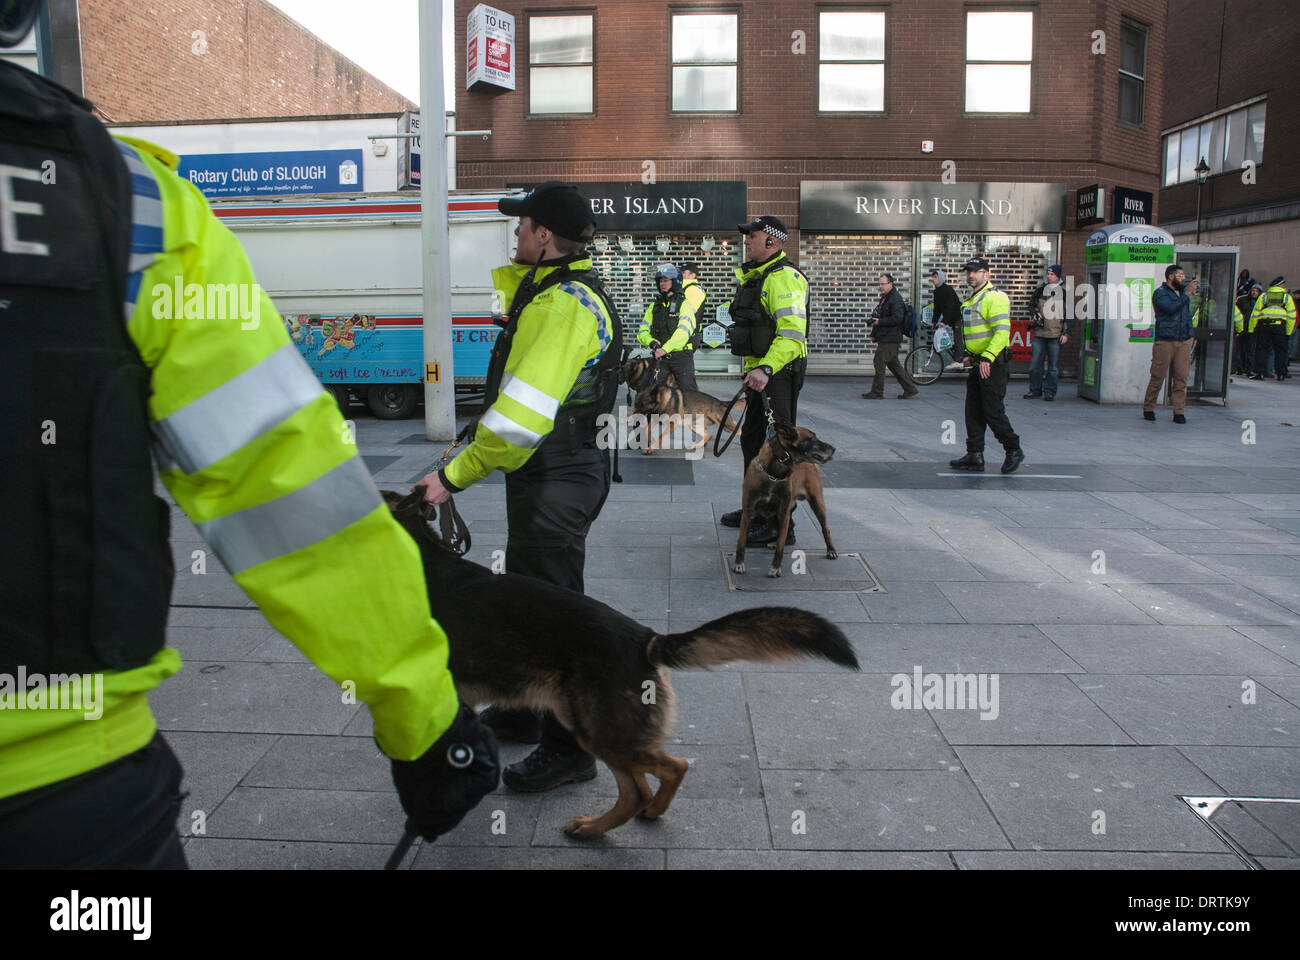 Slough, UK . 01st Feb, 2014. Police dog handlers maintain a separation cordon between EDL supporters and counter-protesters. Slough, United Kingdom. Credit:  Peter Manning/Alamy Live News - Stock Image